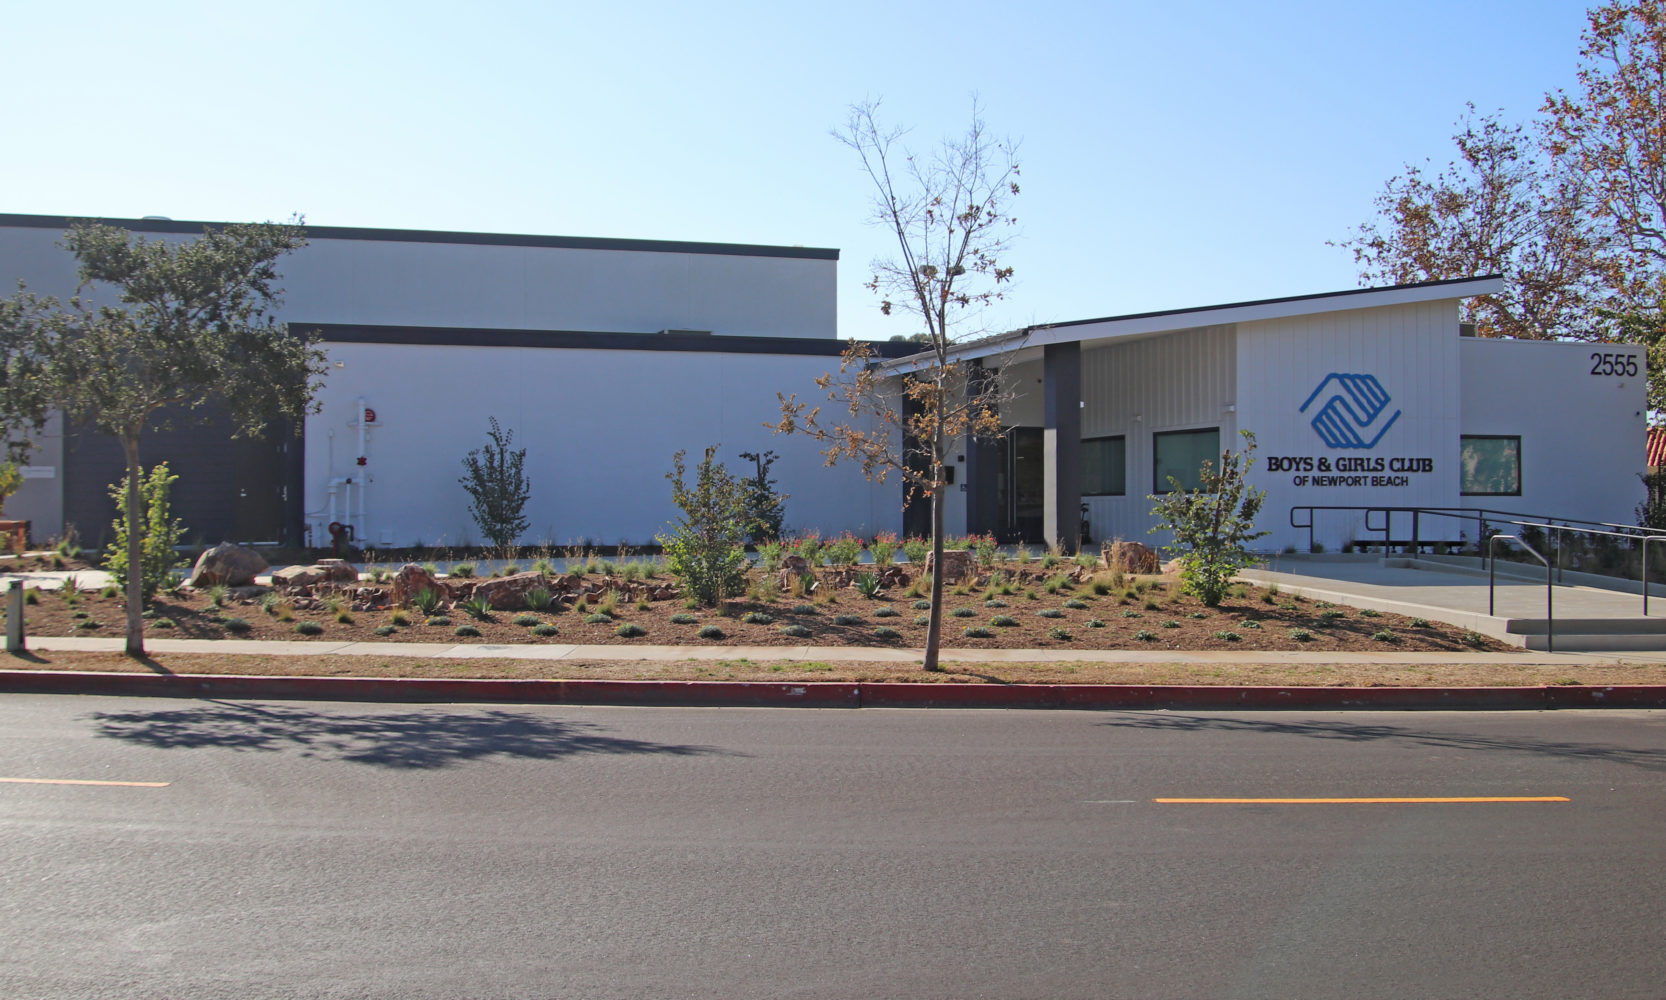 Boys & Girls Club of Newport Beach exterior